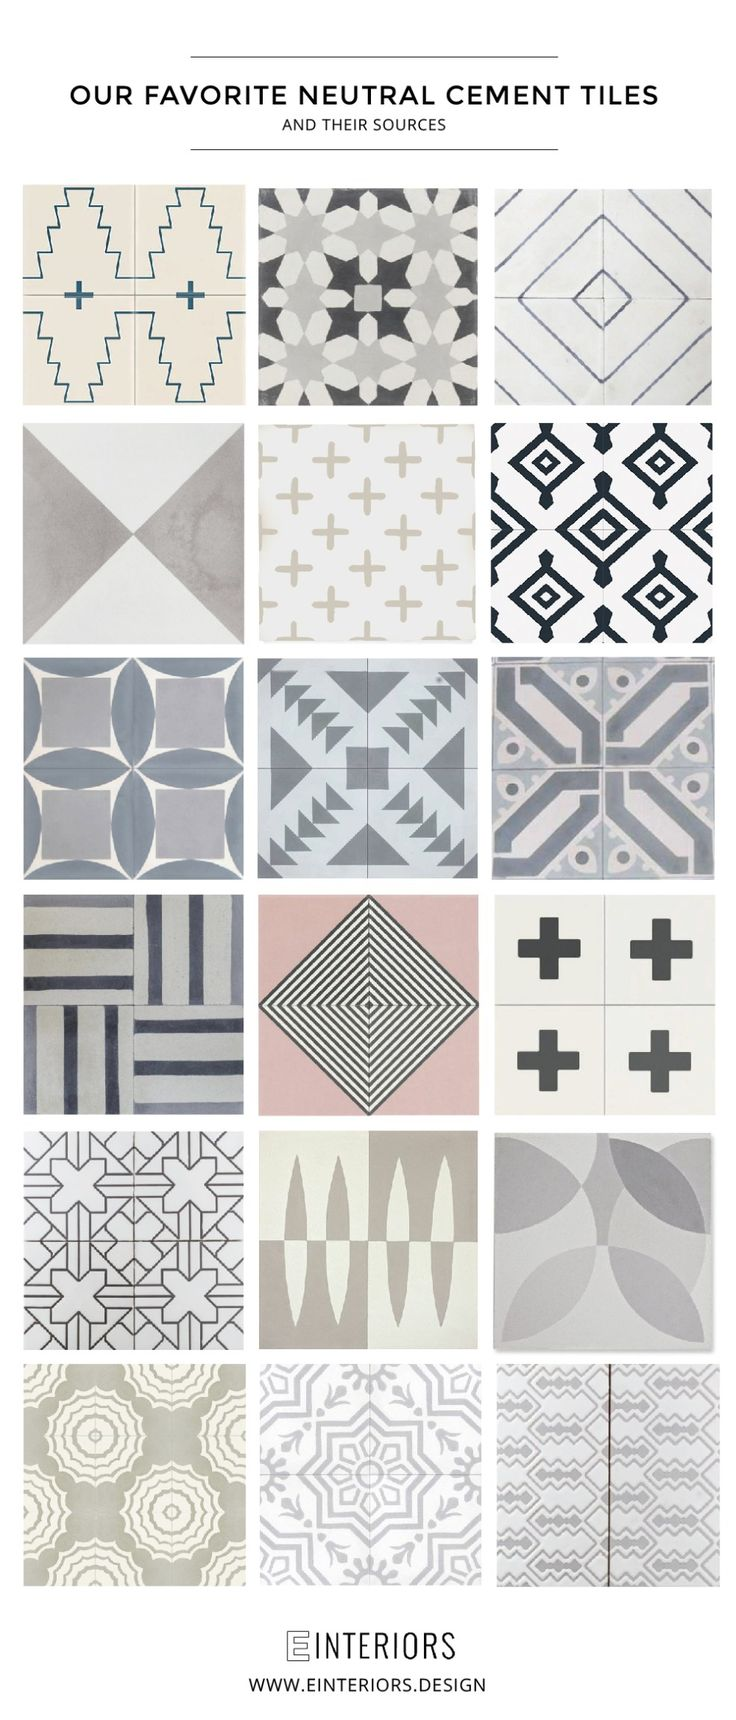 OUR FAVORITE CEMENT TILES + RESOURCES